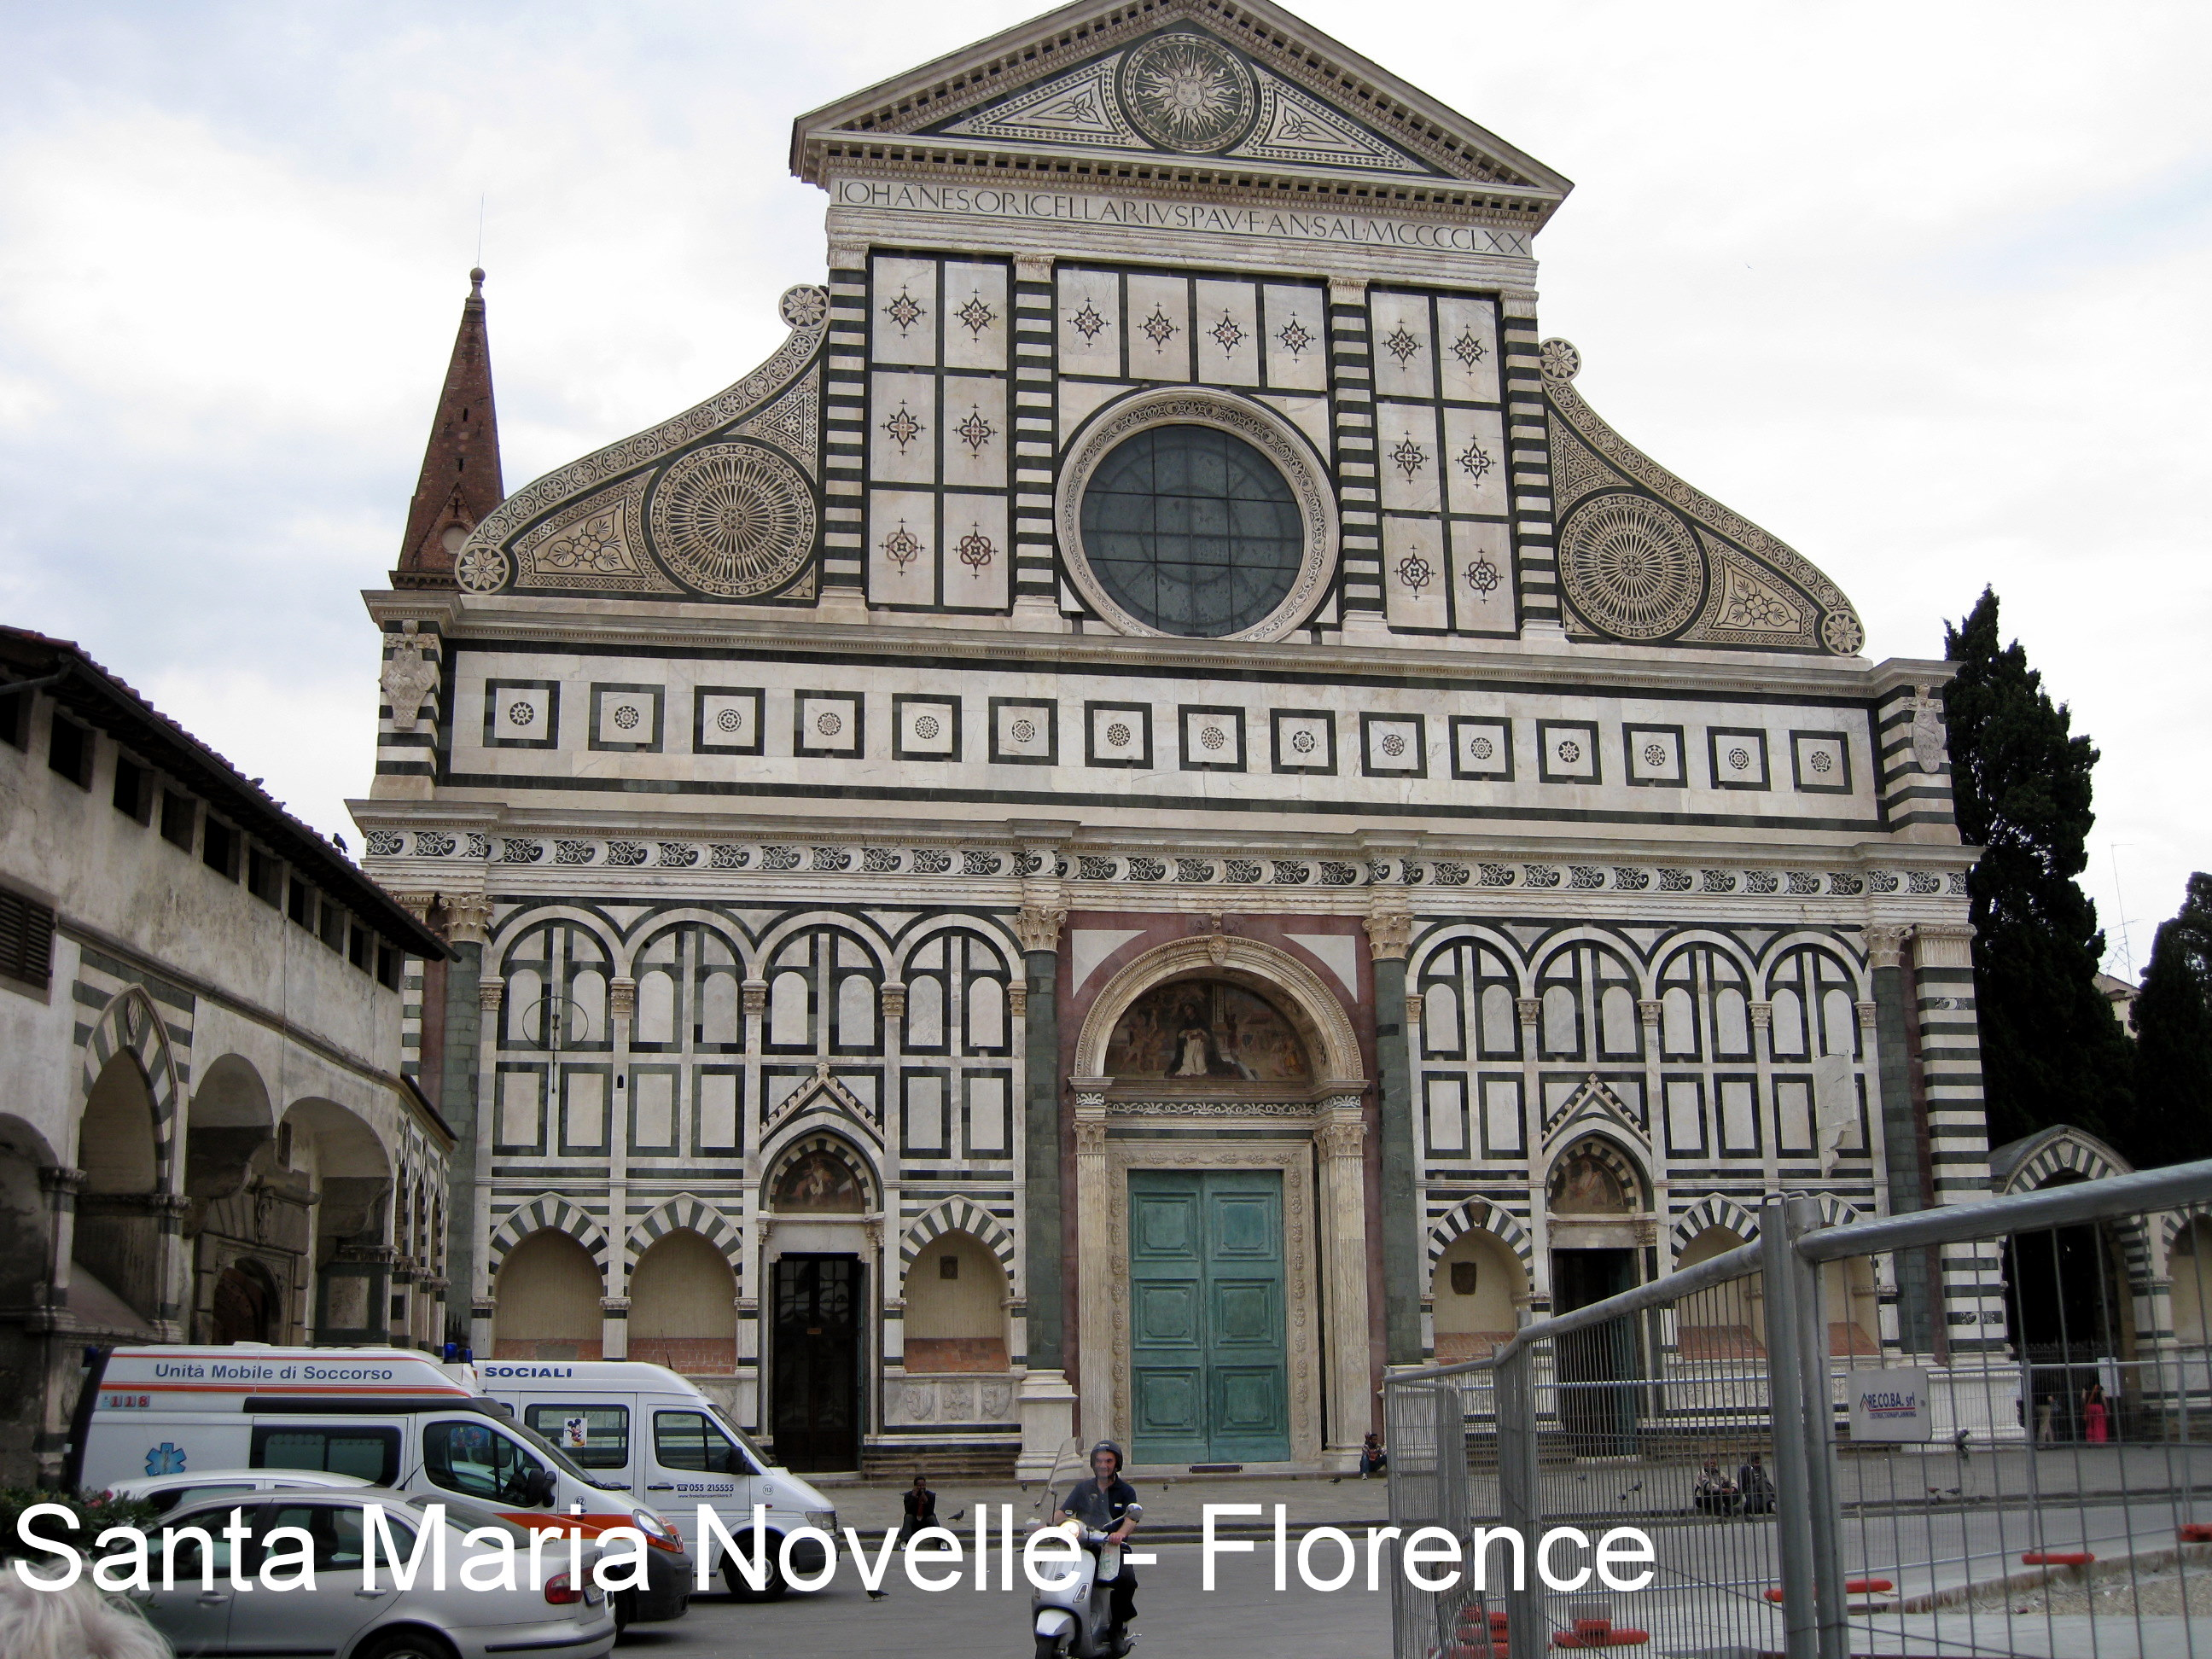 What were the major characteristics of the Italian Renaissance?